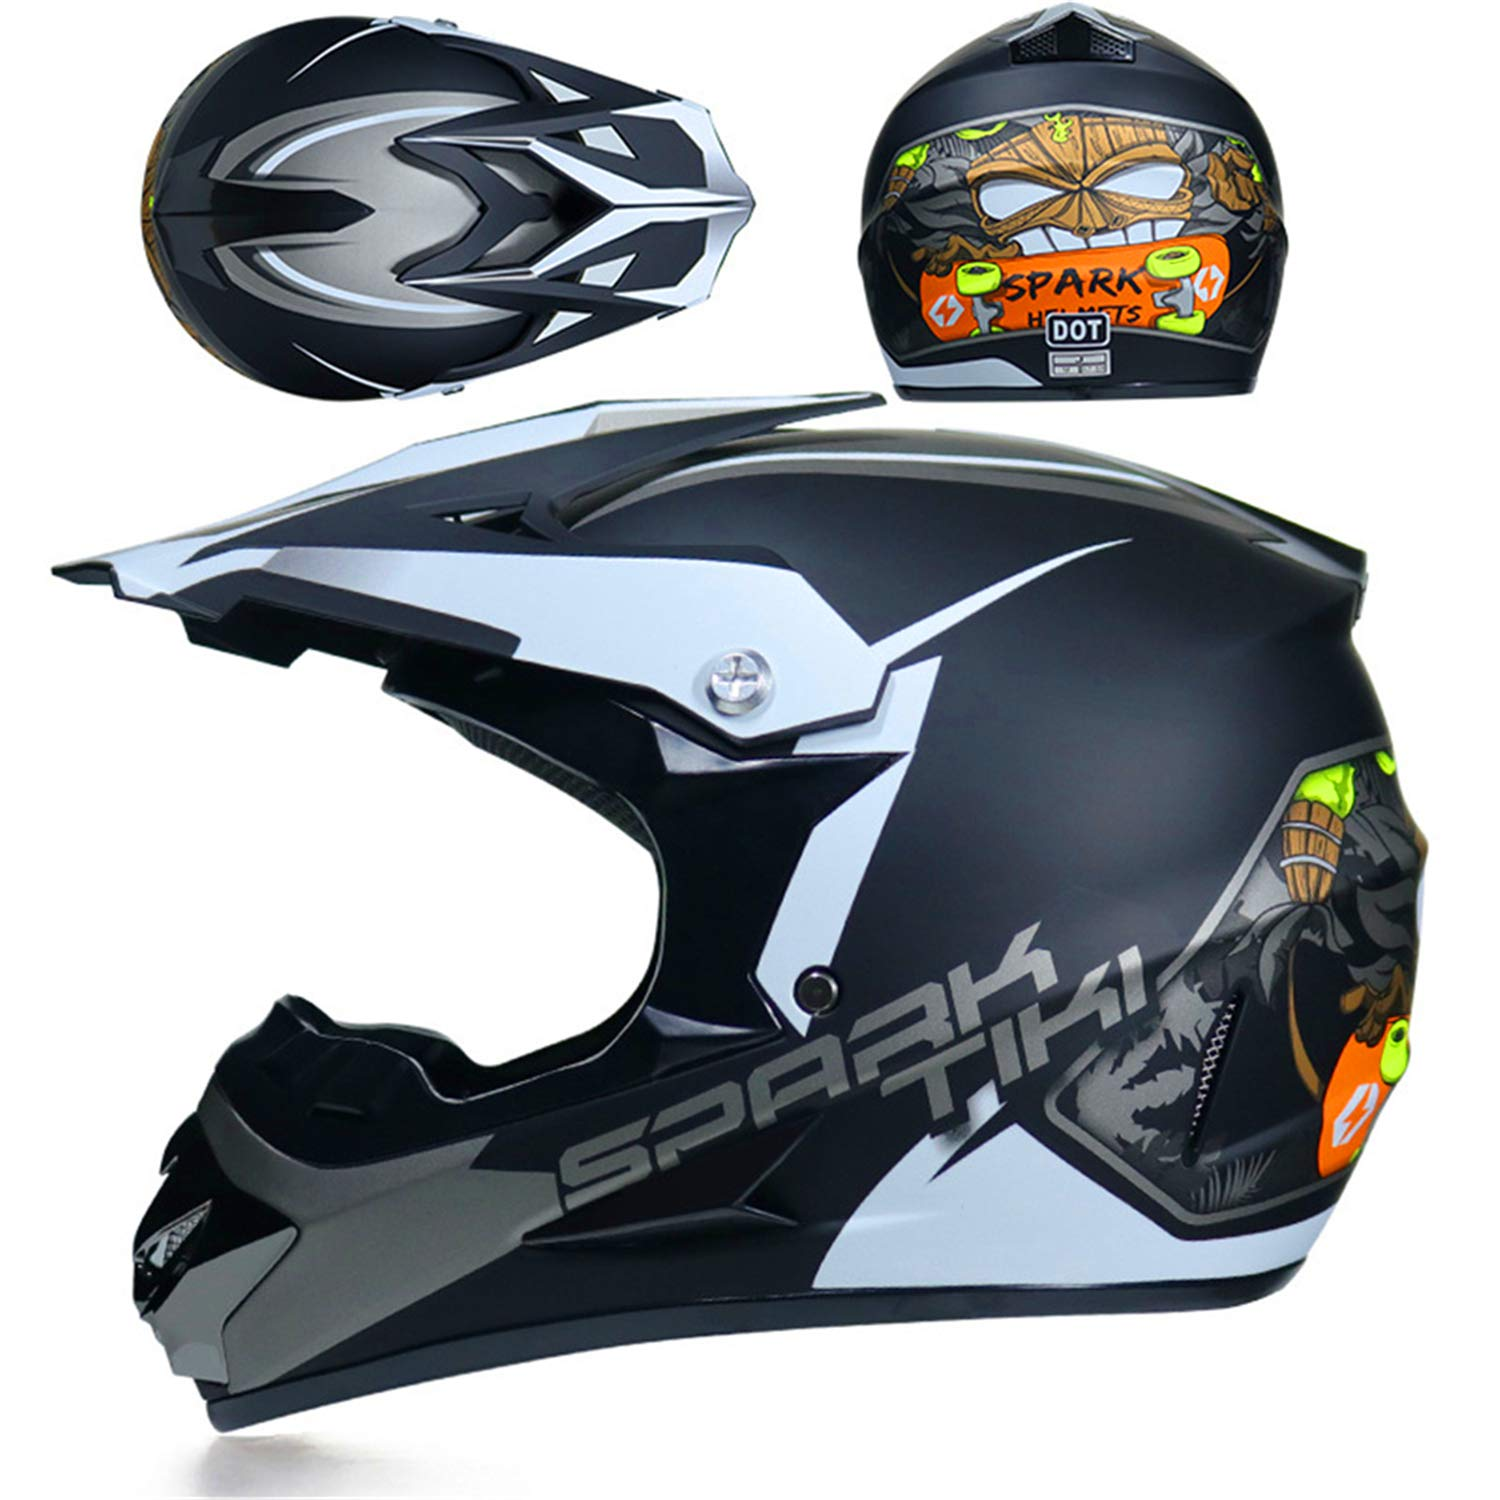 for Adult Youth Junior Children Kids with Goggles Gloves Mask Motocross Helmet BMX Dh Racing Helmet Capacetes Motocross helmet spares 57~58cm , Black yellow L